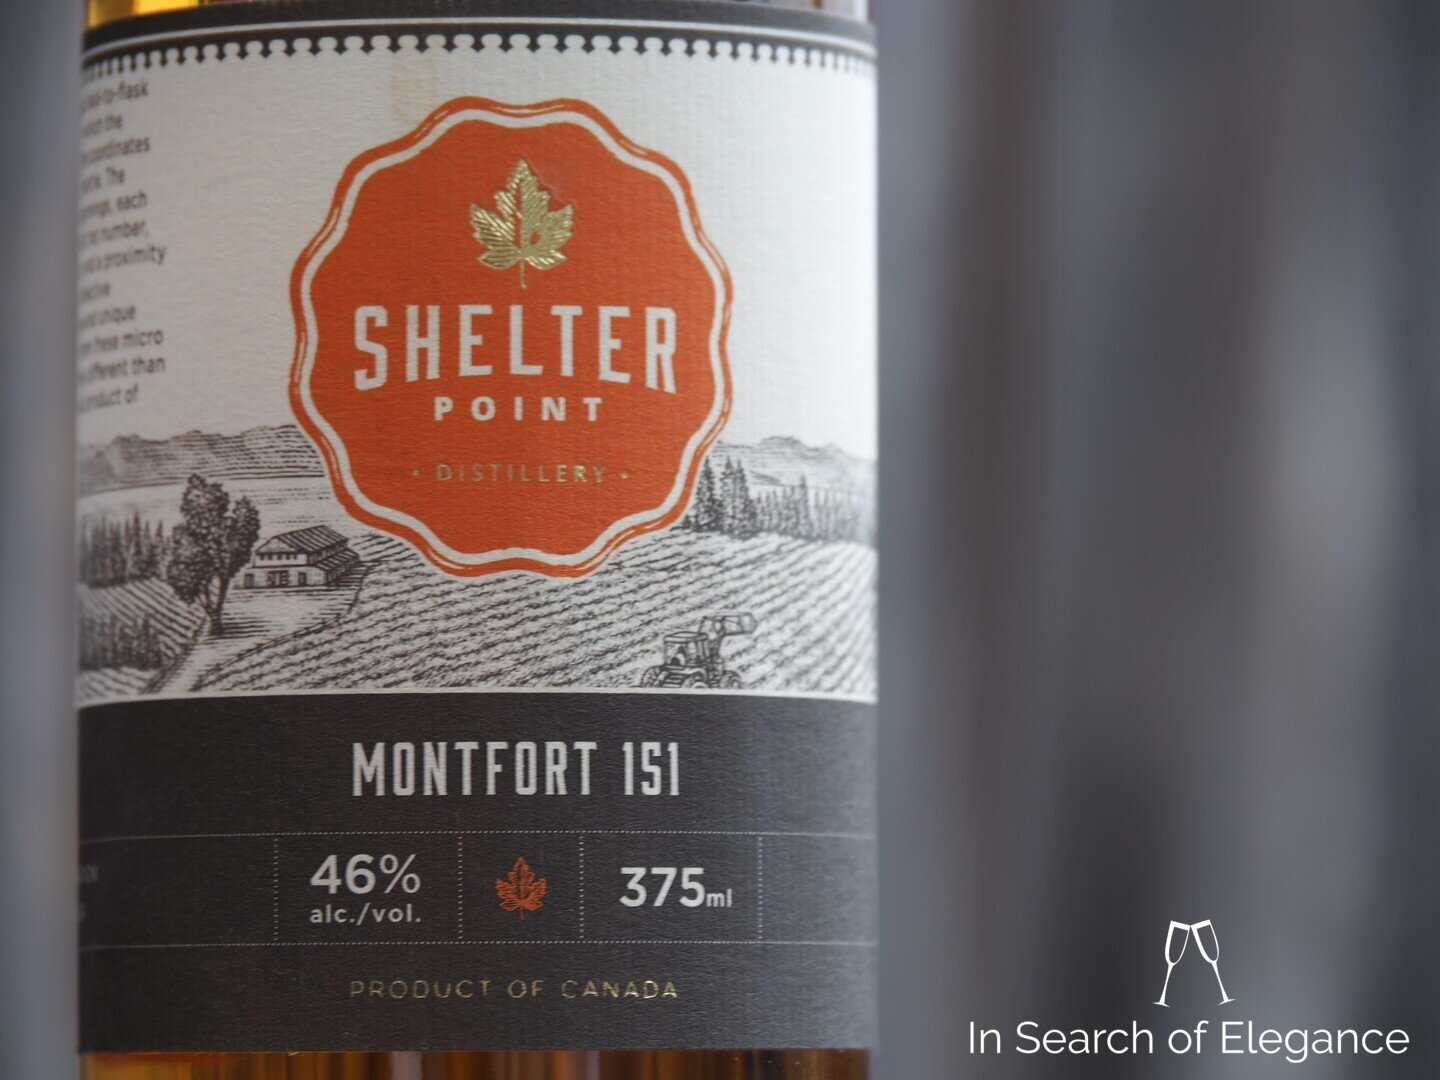 Image courtesy of Shelter Point Distillery.